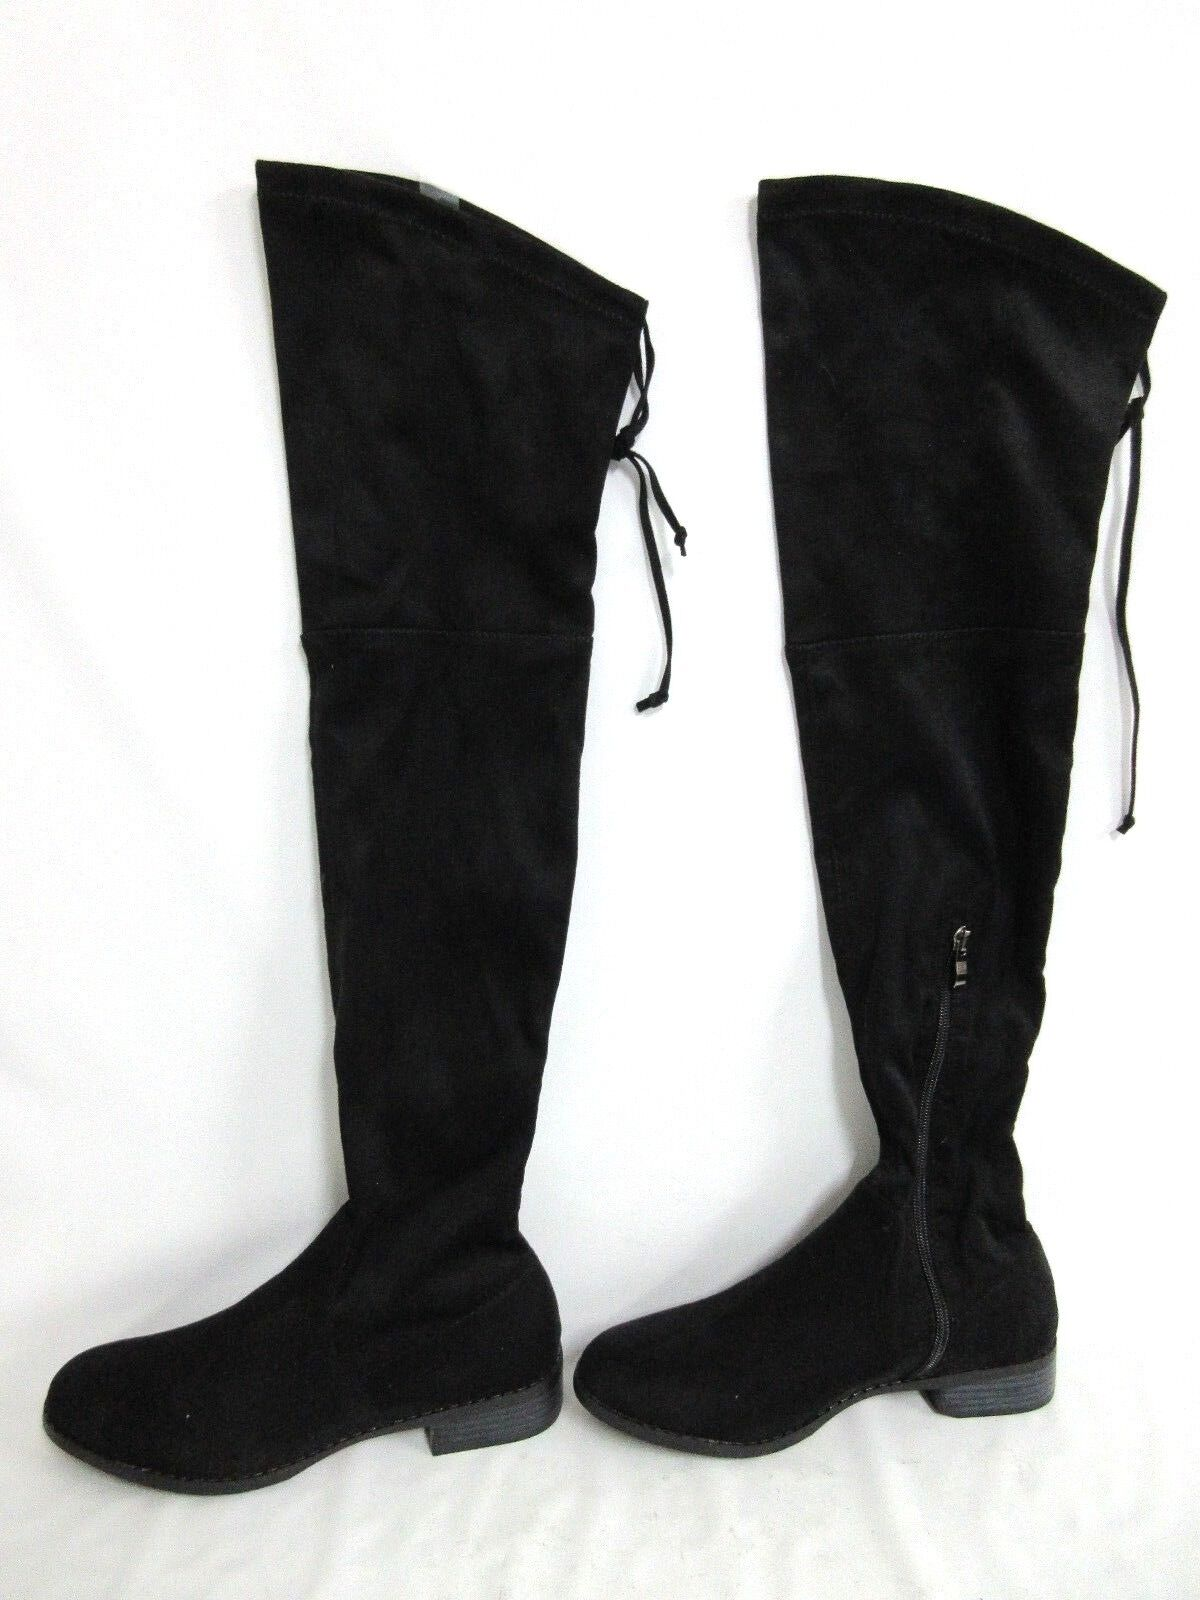 New Catherine Malandrino Morcha Suede Tall Over the Knee Boots Size  7.5  3